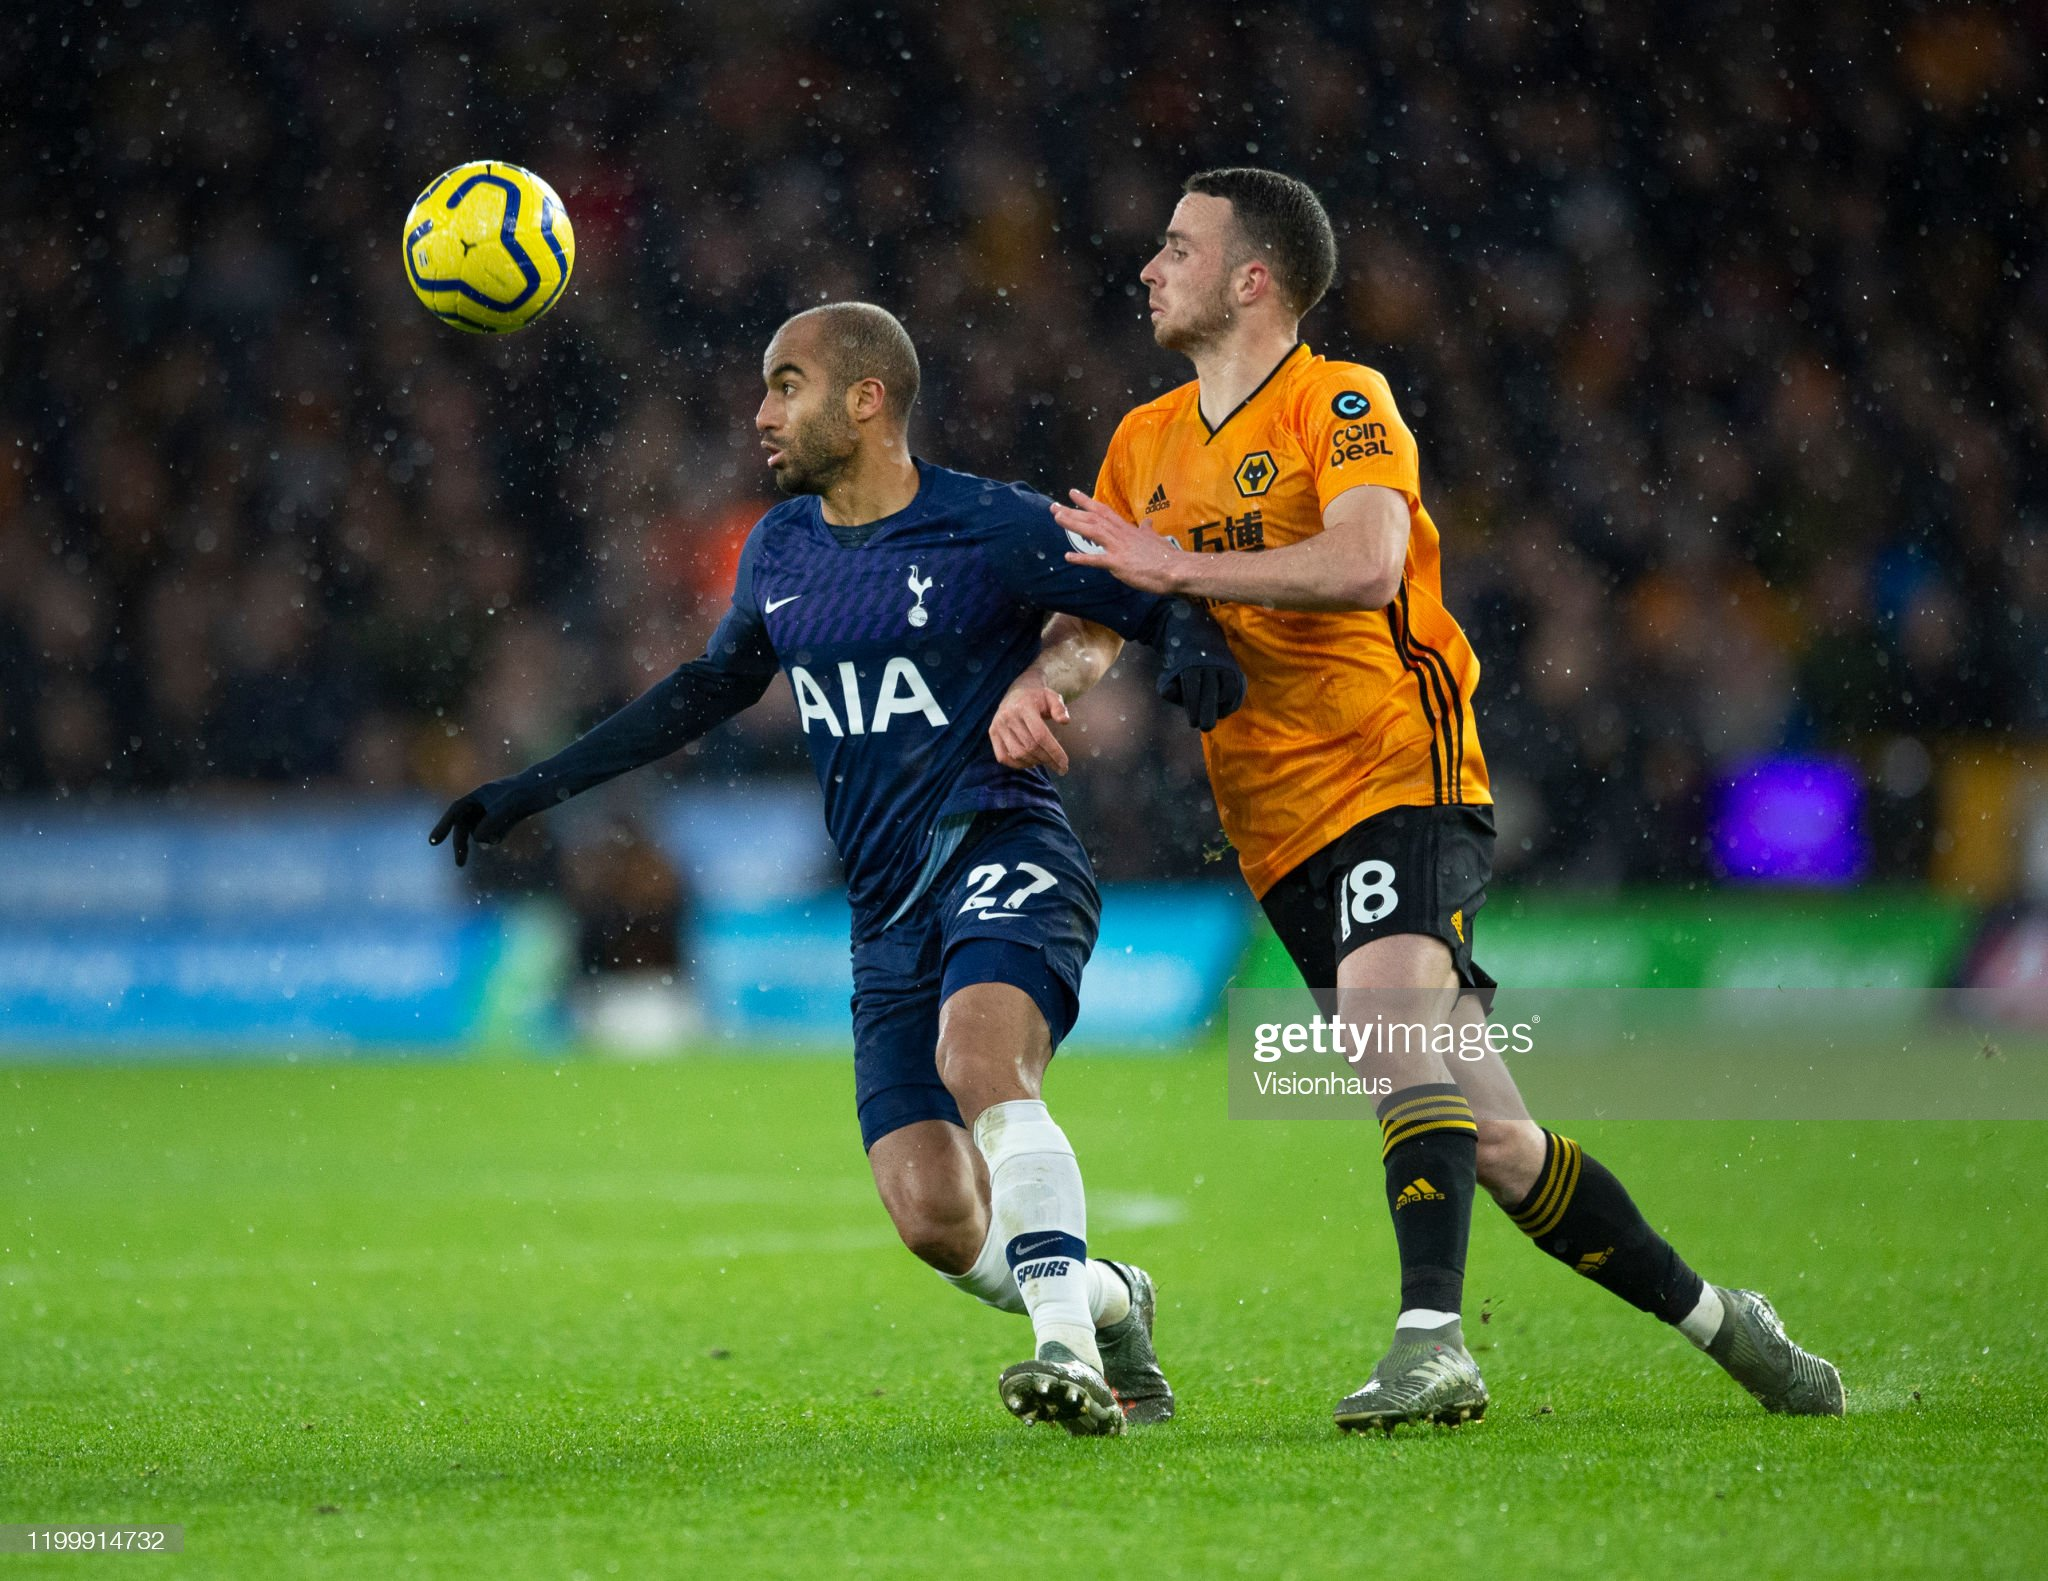 Tottenham v Wolves Preview, prediction and odds